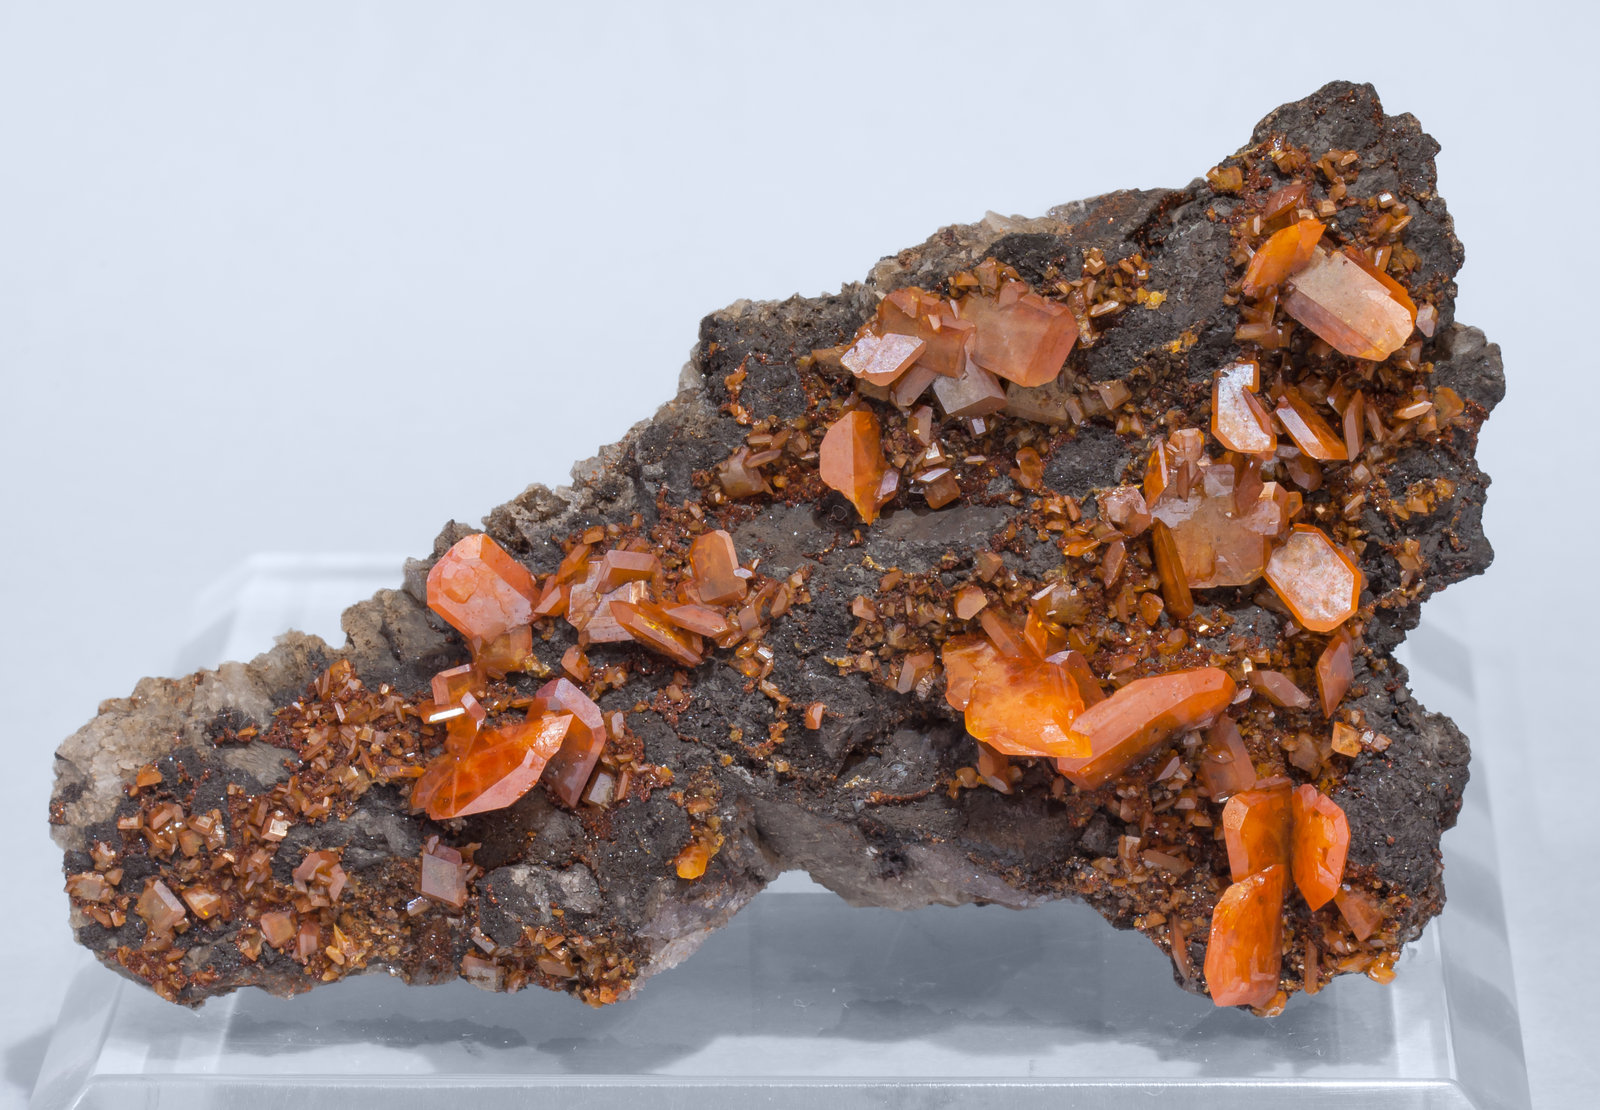 specimens/s_imagesAJ4/Wulfenite-MB96AJ4f.jpg